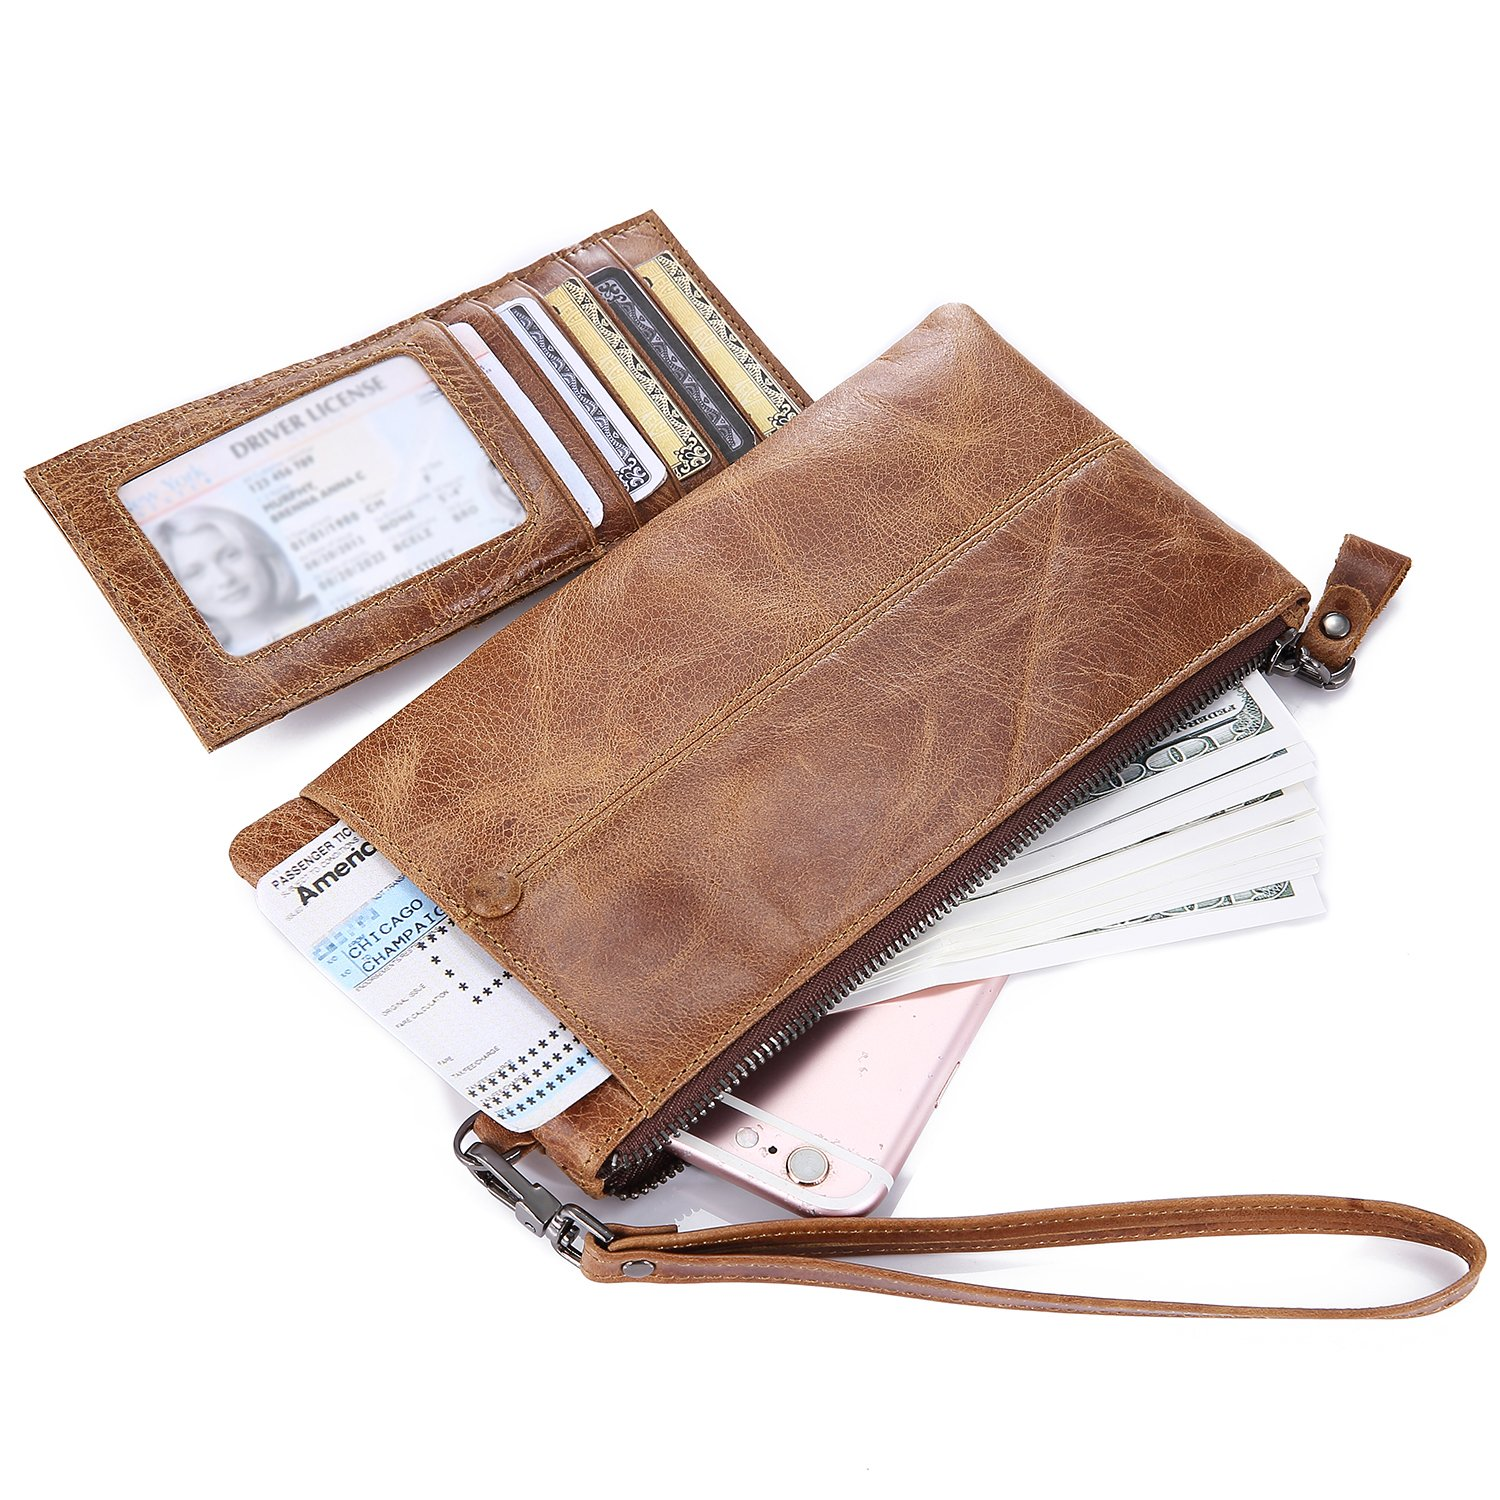 IVESIGN Zipper Wallet RFID Blocking Credit Card Holder Genuine Leather With Wristlet by IVESIGN (Image #4)